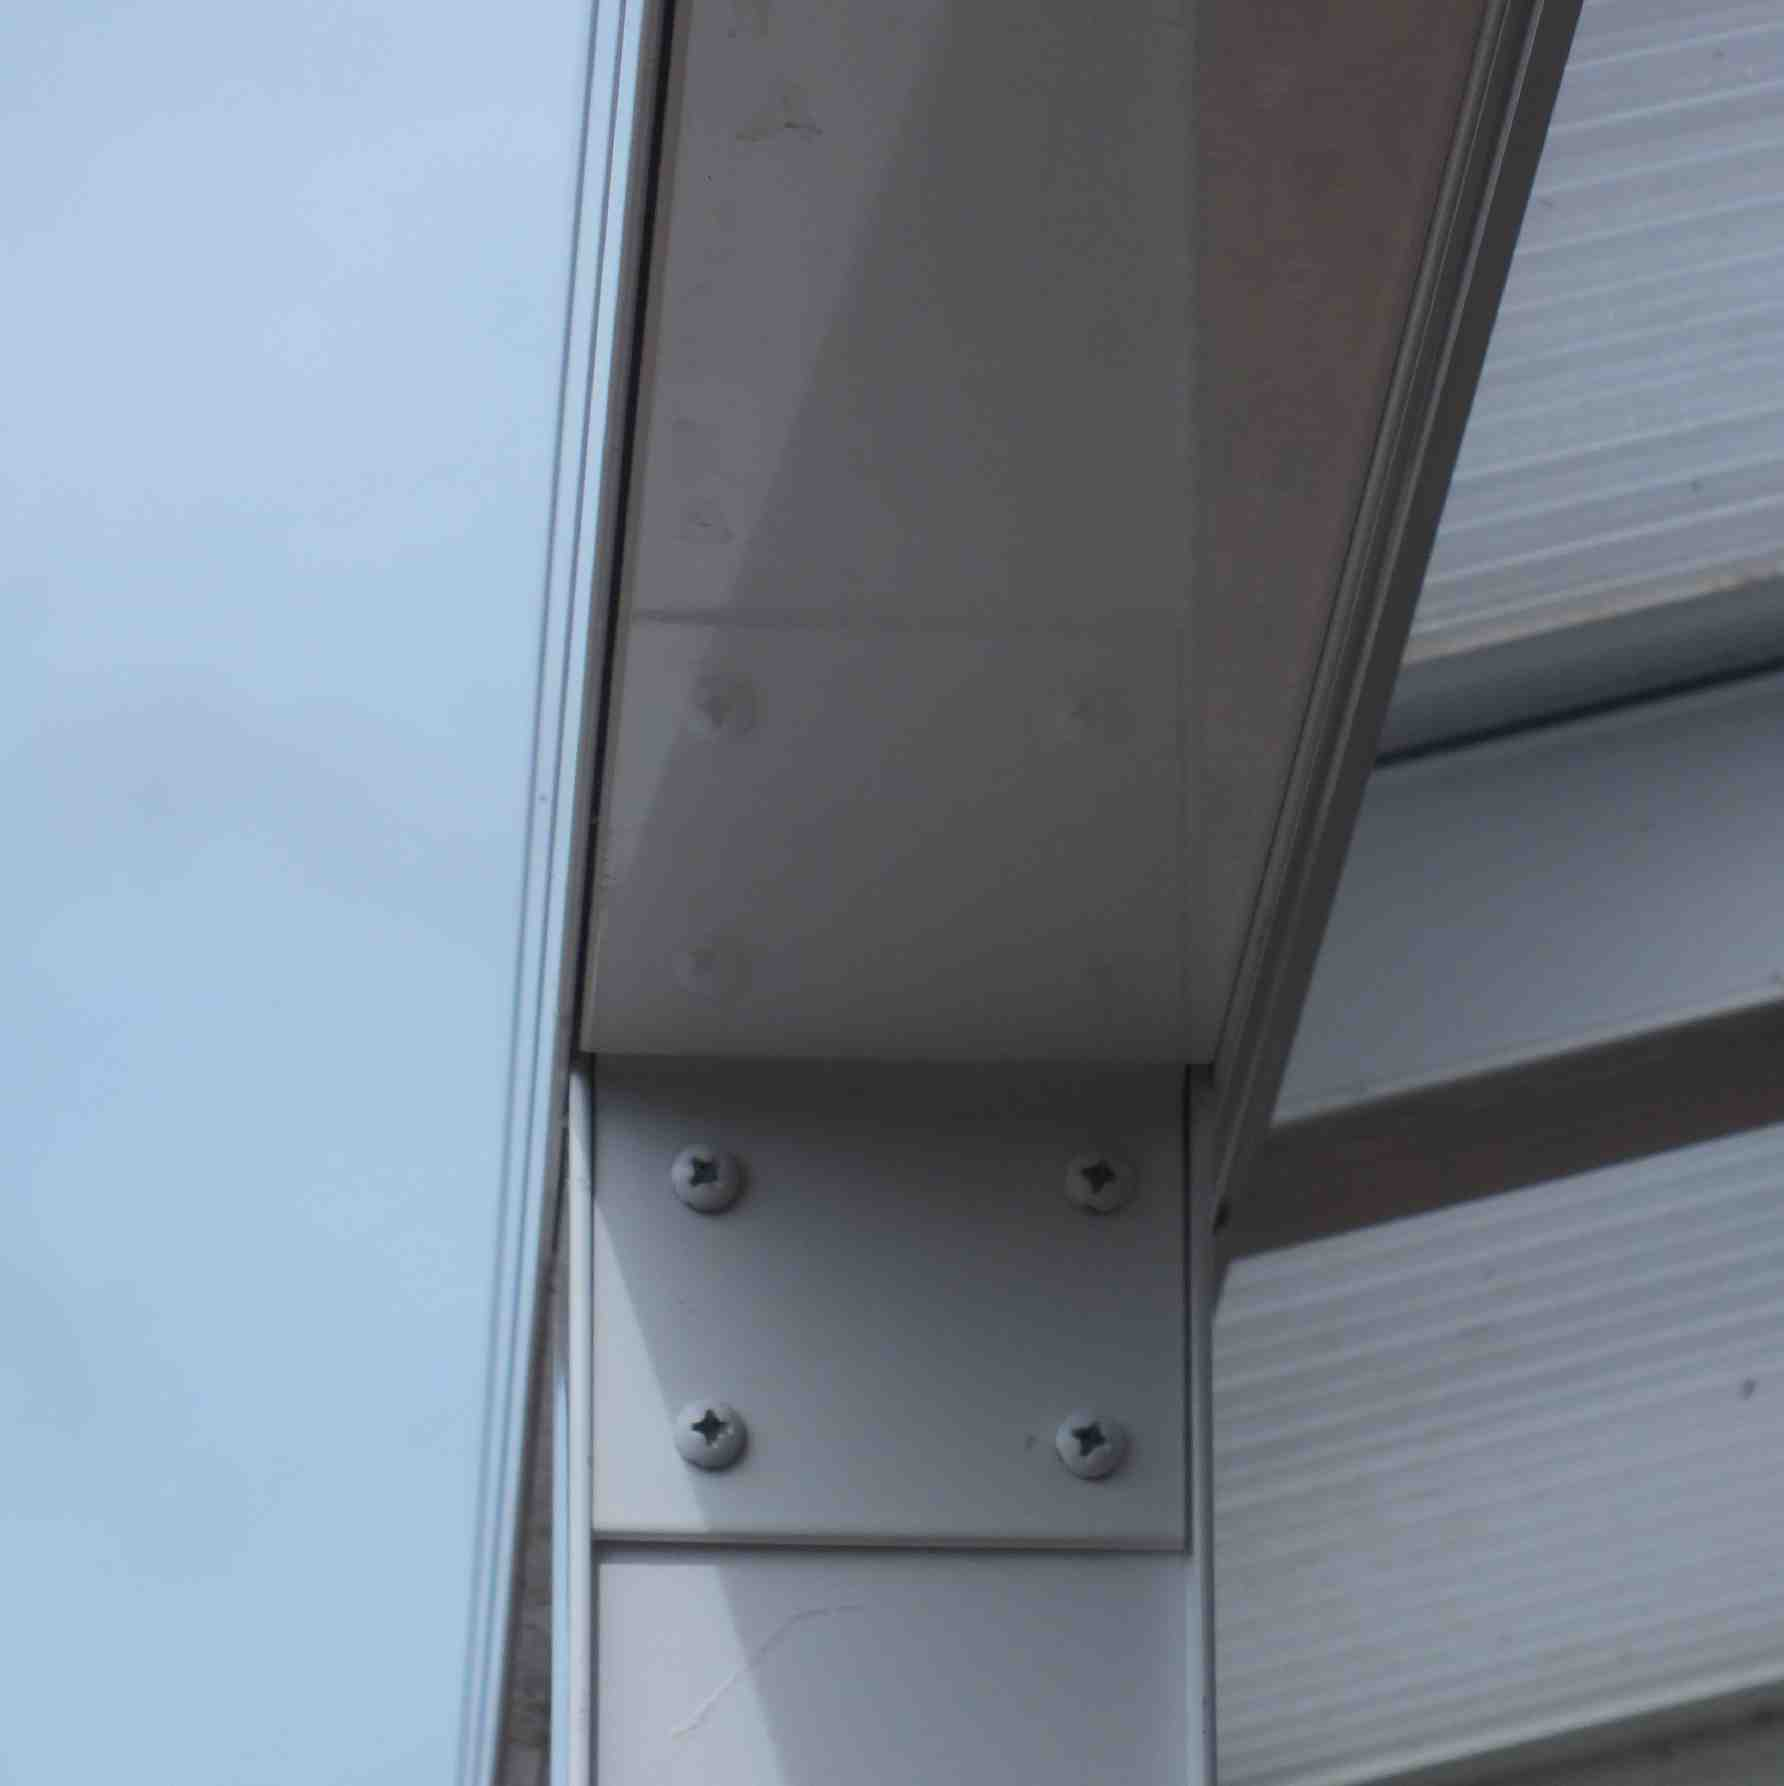 Affordable Omega Verandah with 16mm Polycarbonate Glazing - 12.0m (W) x 4.5m (P), (5) Supporting Posts